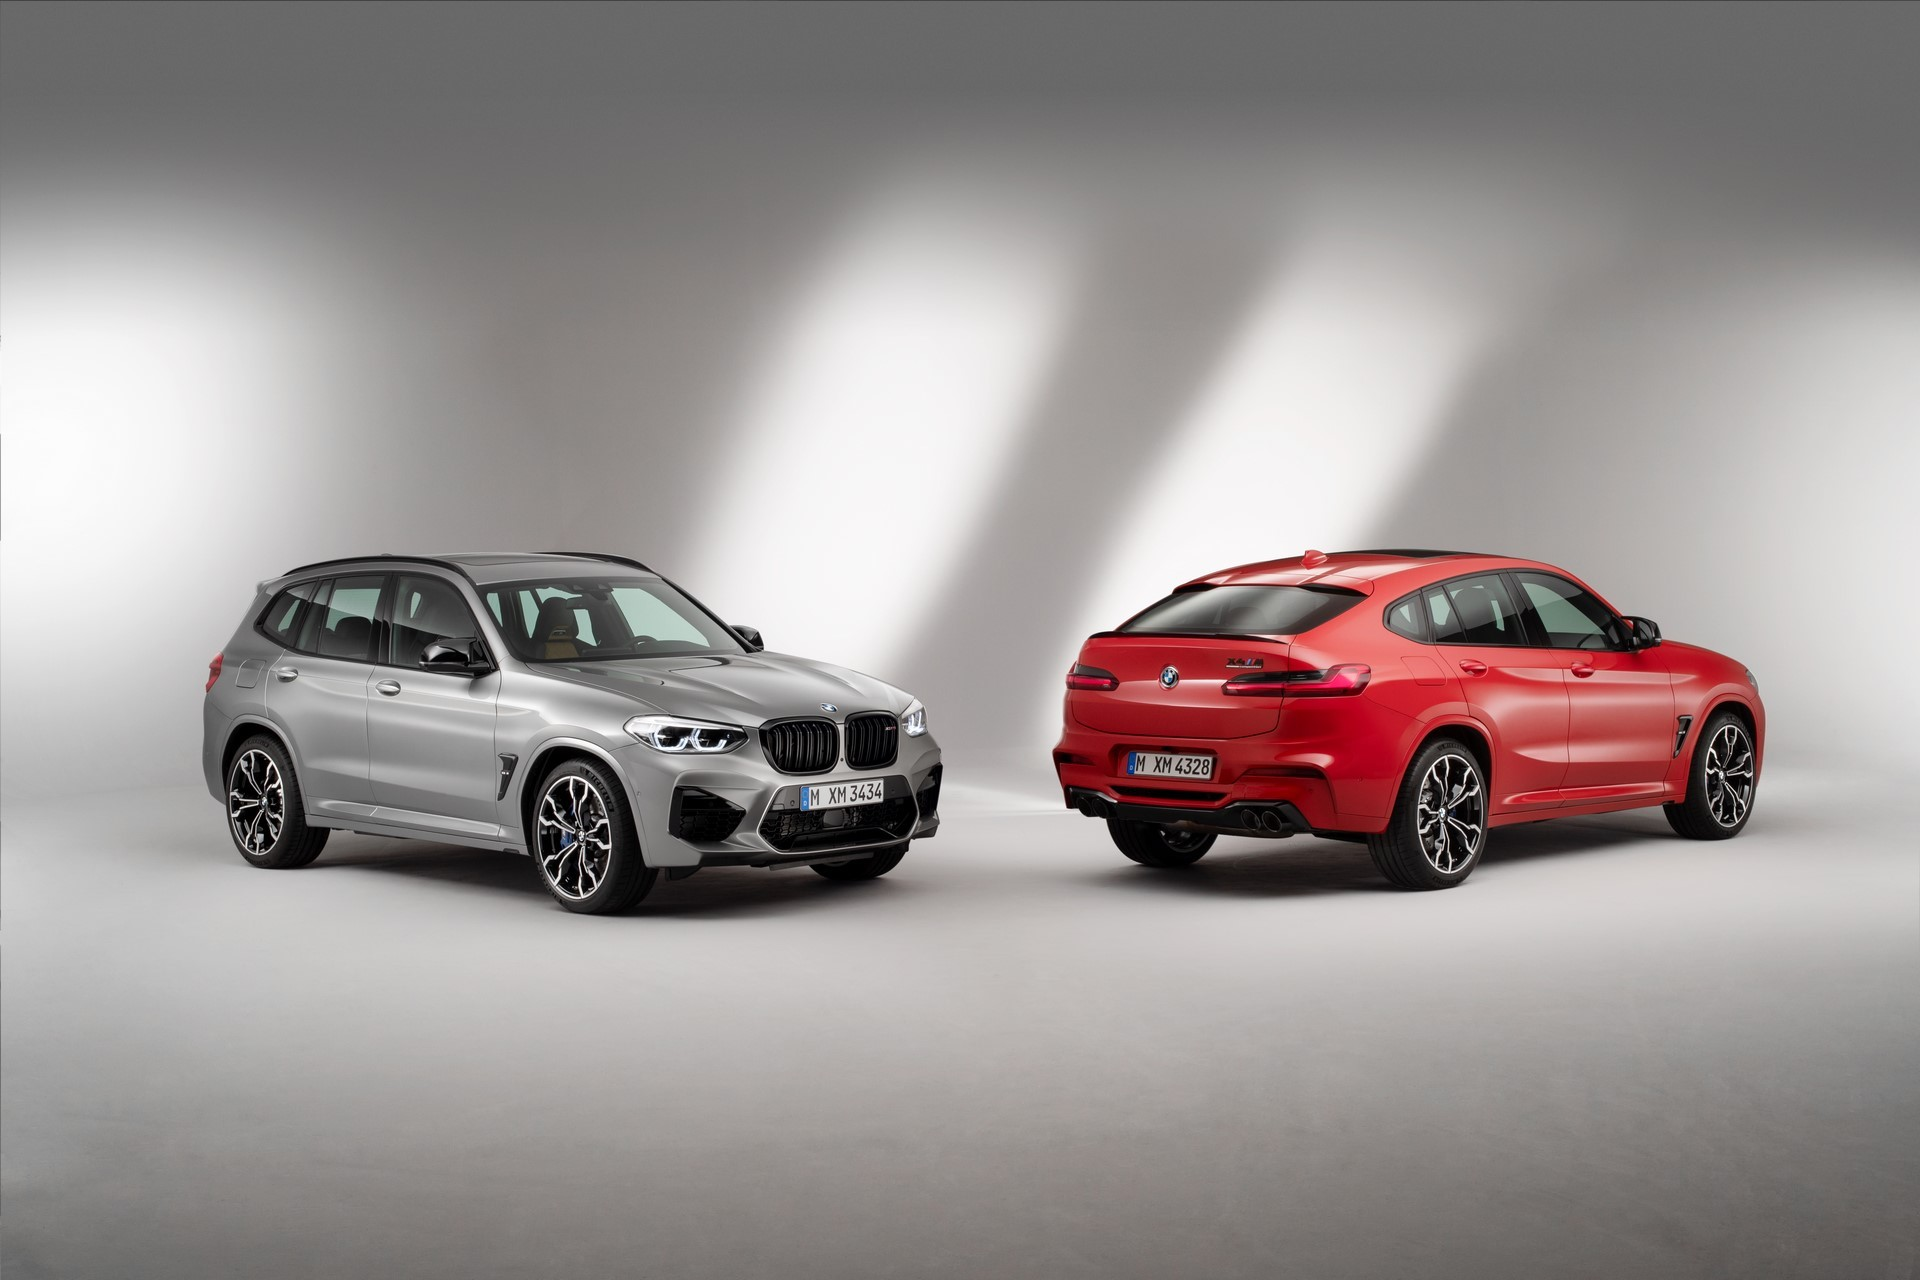 BMW X3 M and X4 M 2019 (207)